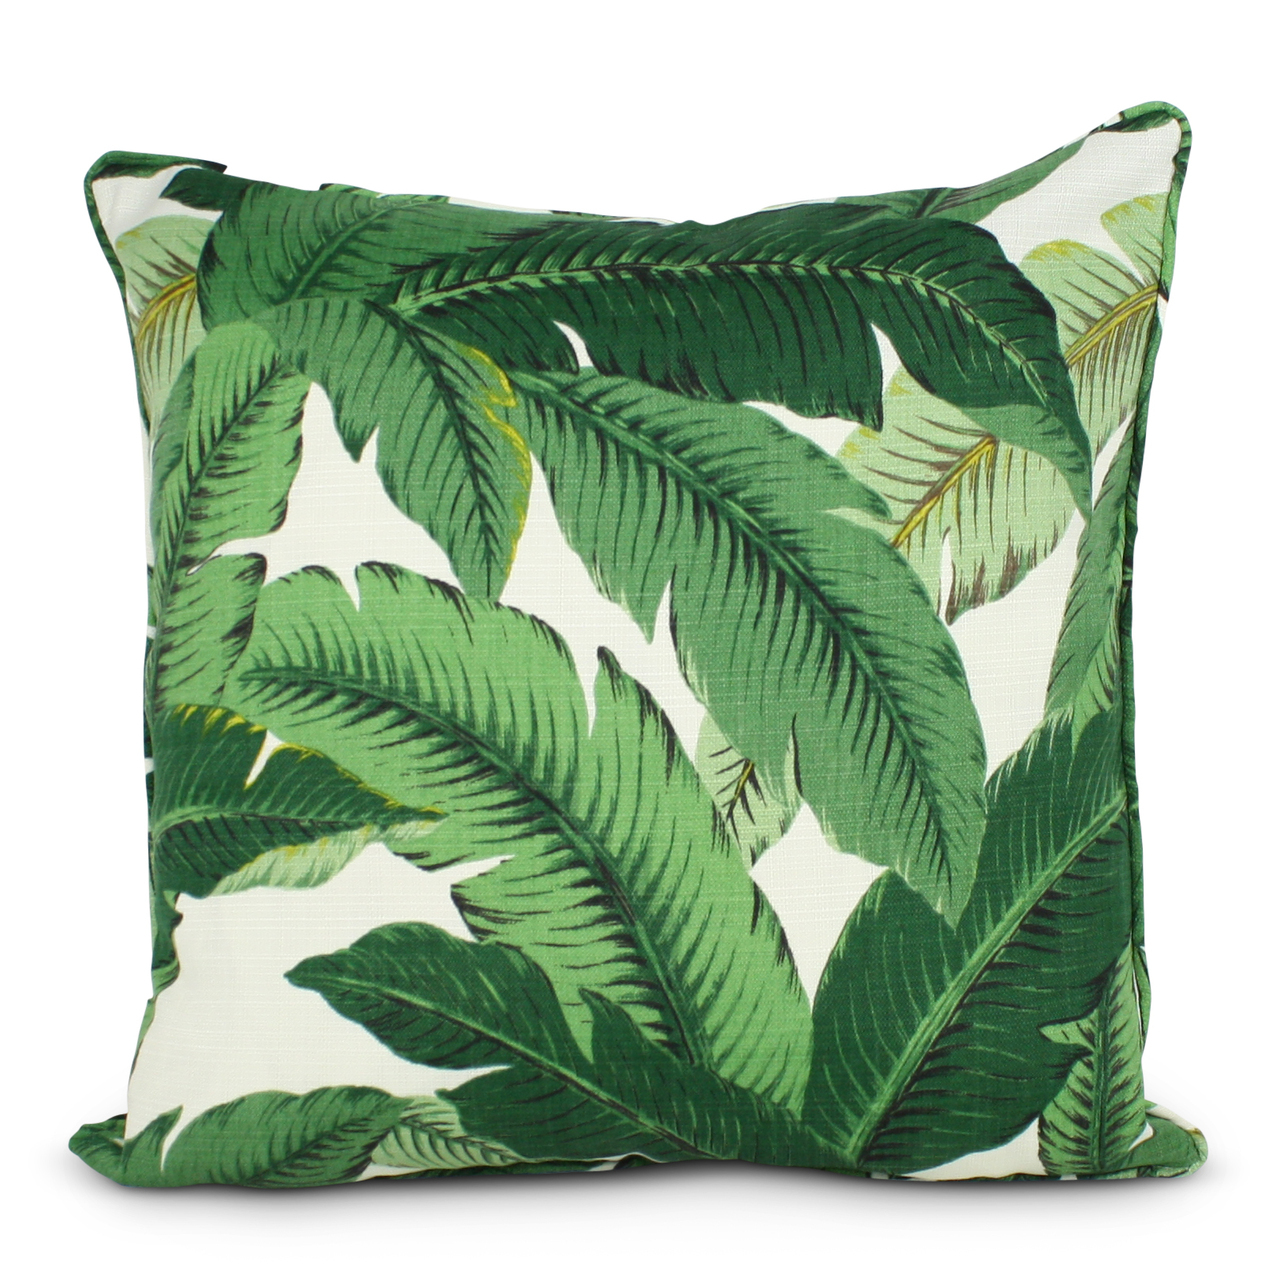 Banana Leaf Chic A Beach A Day 1280x1280